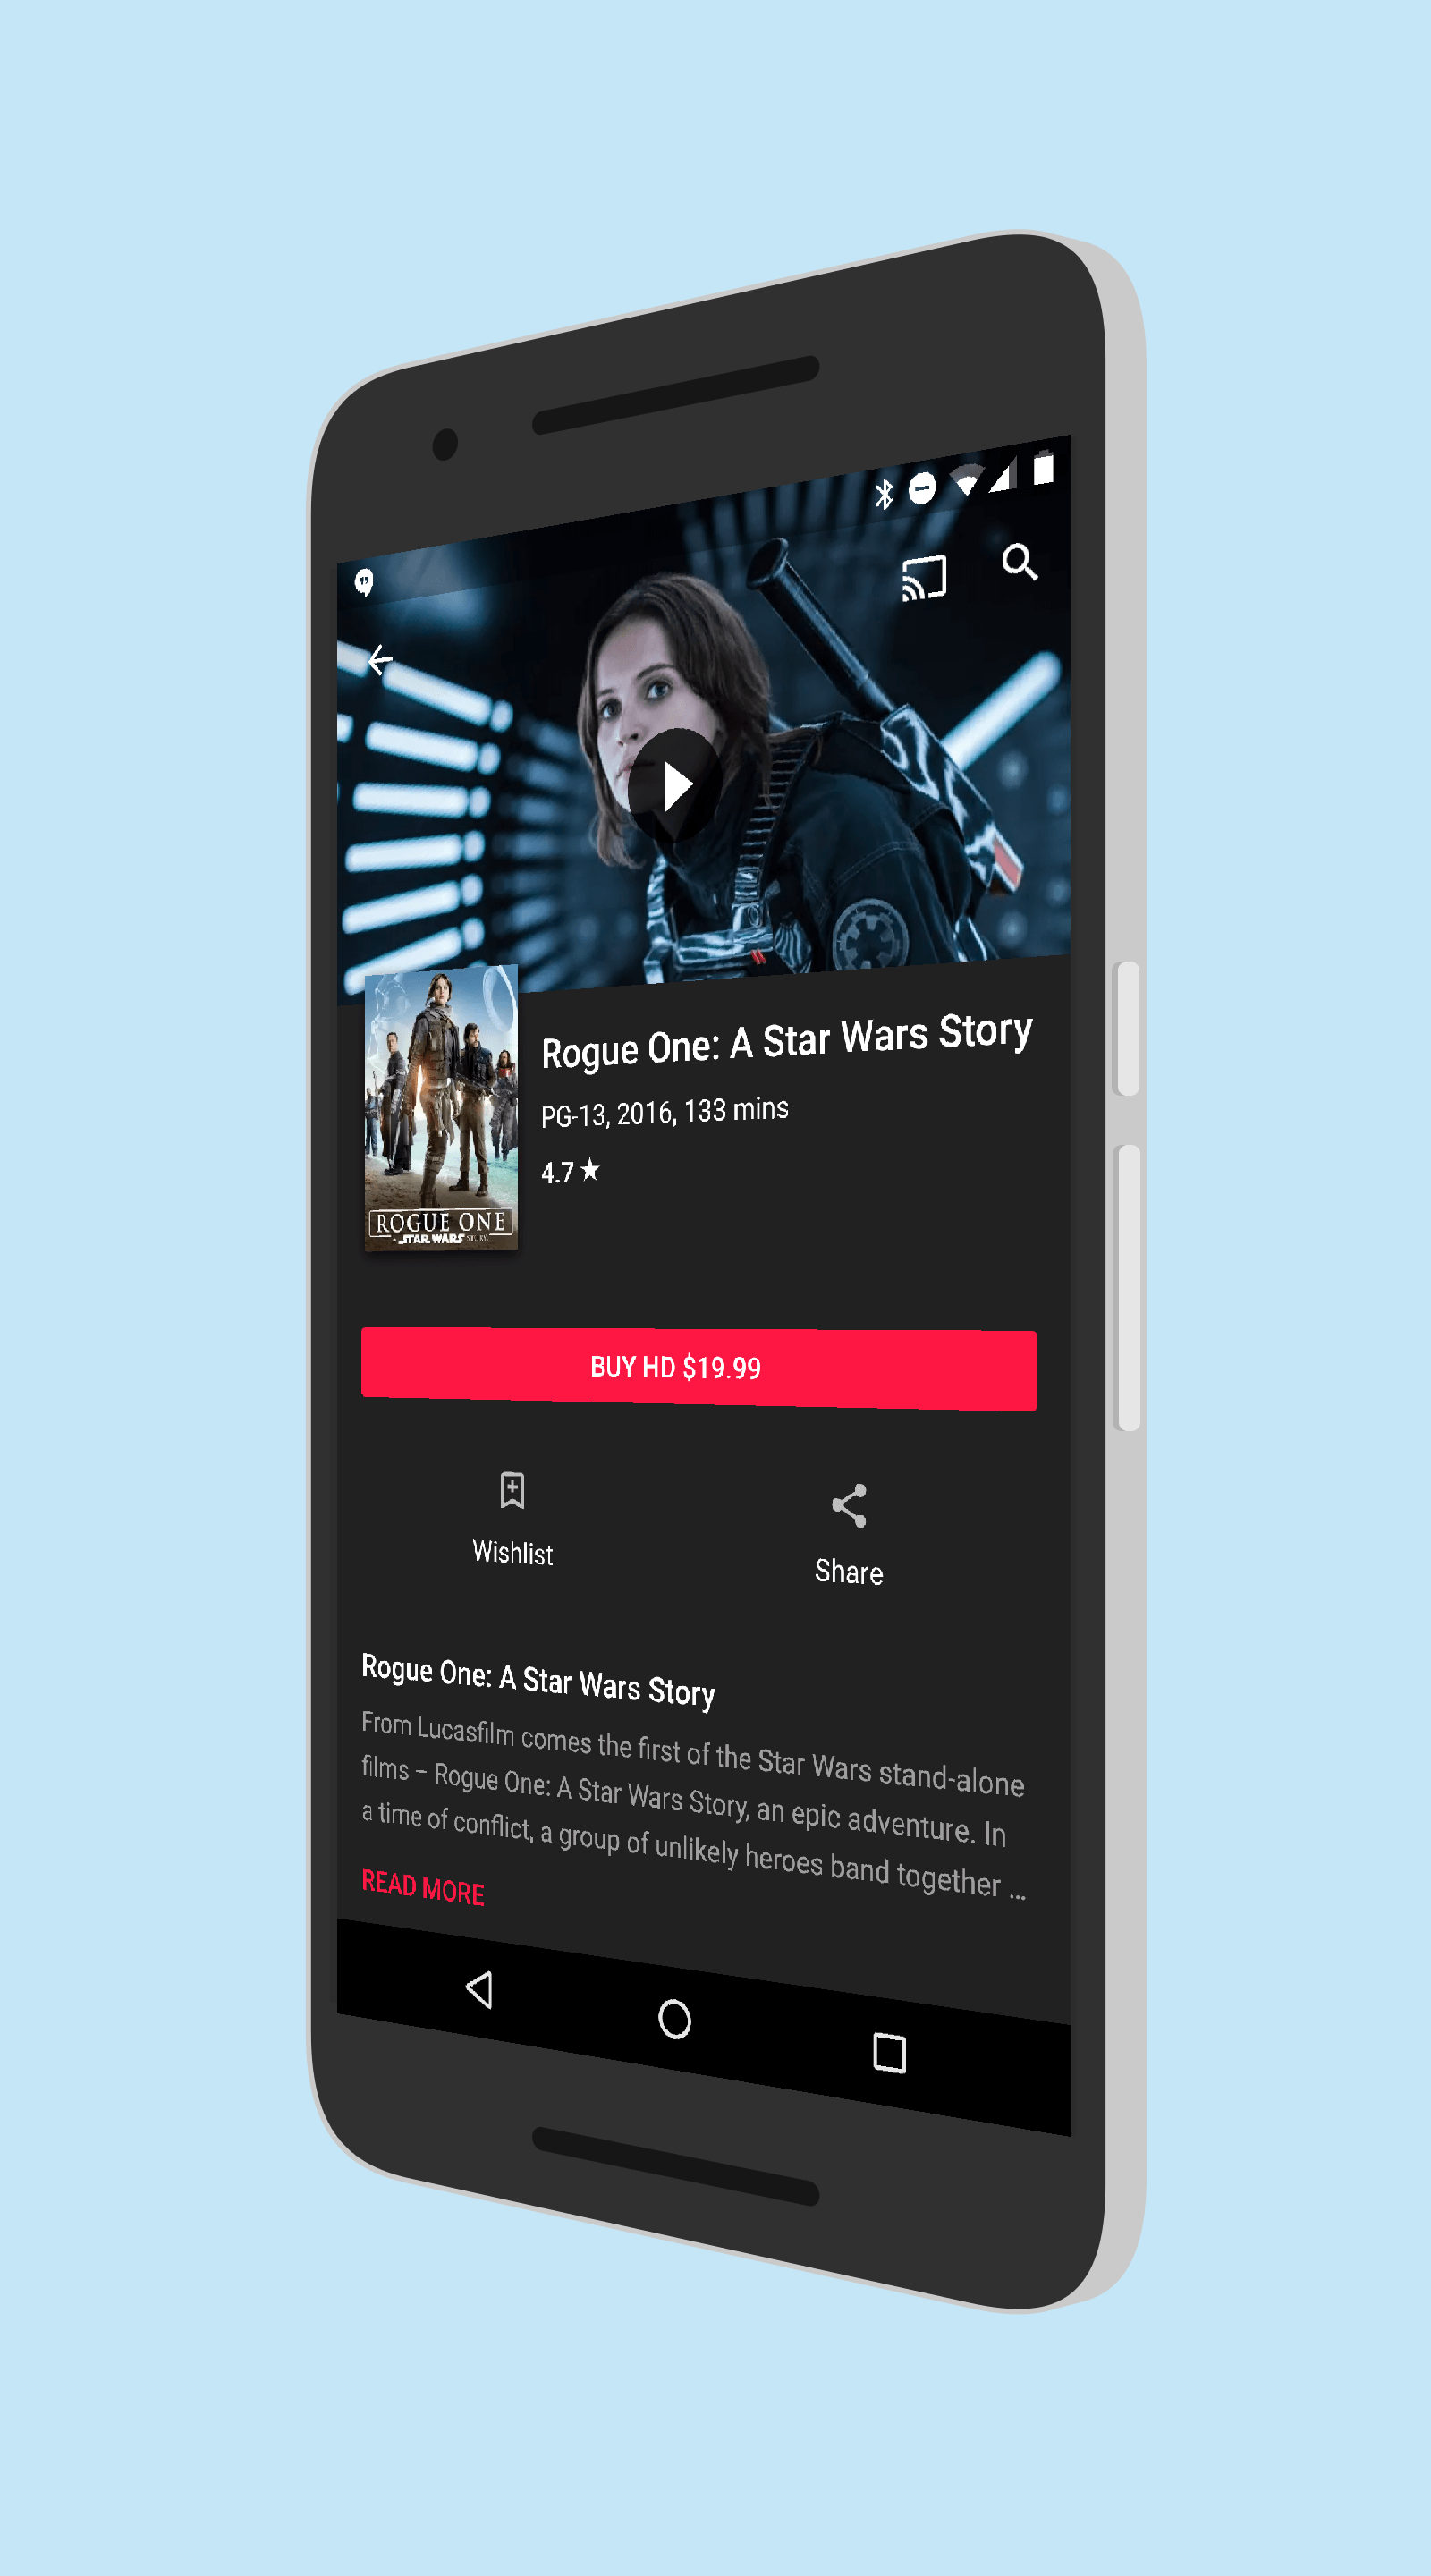 Rogue One: A Star Wars Story on Google Play